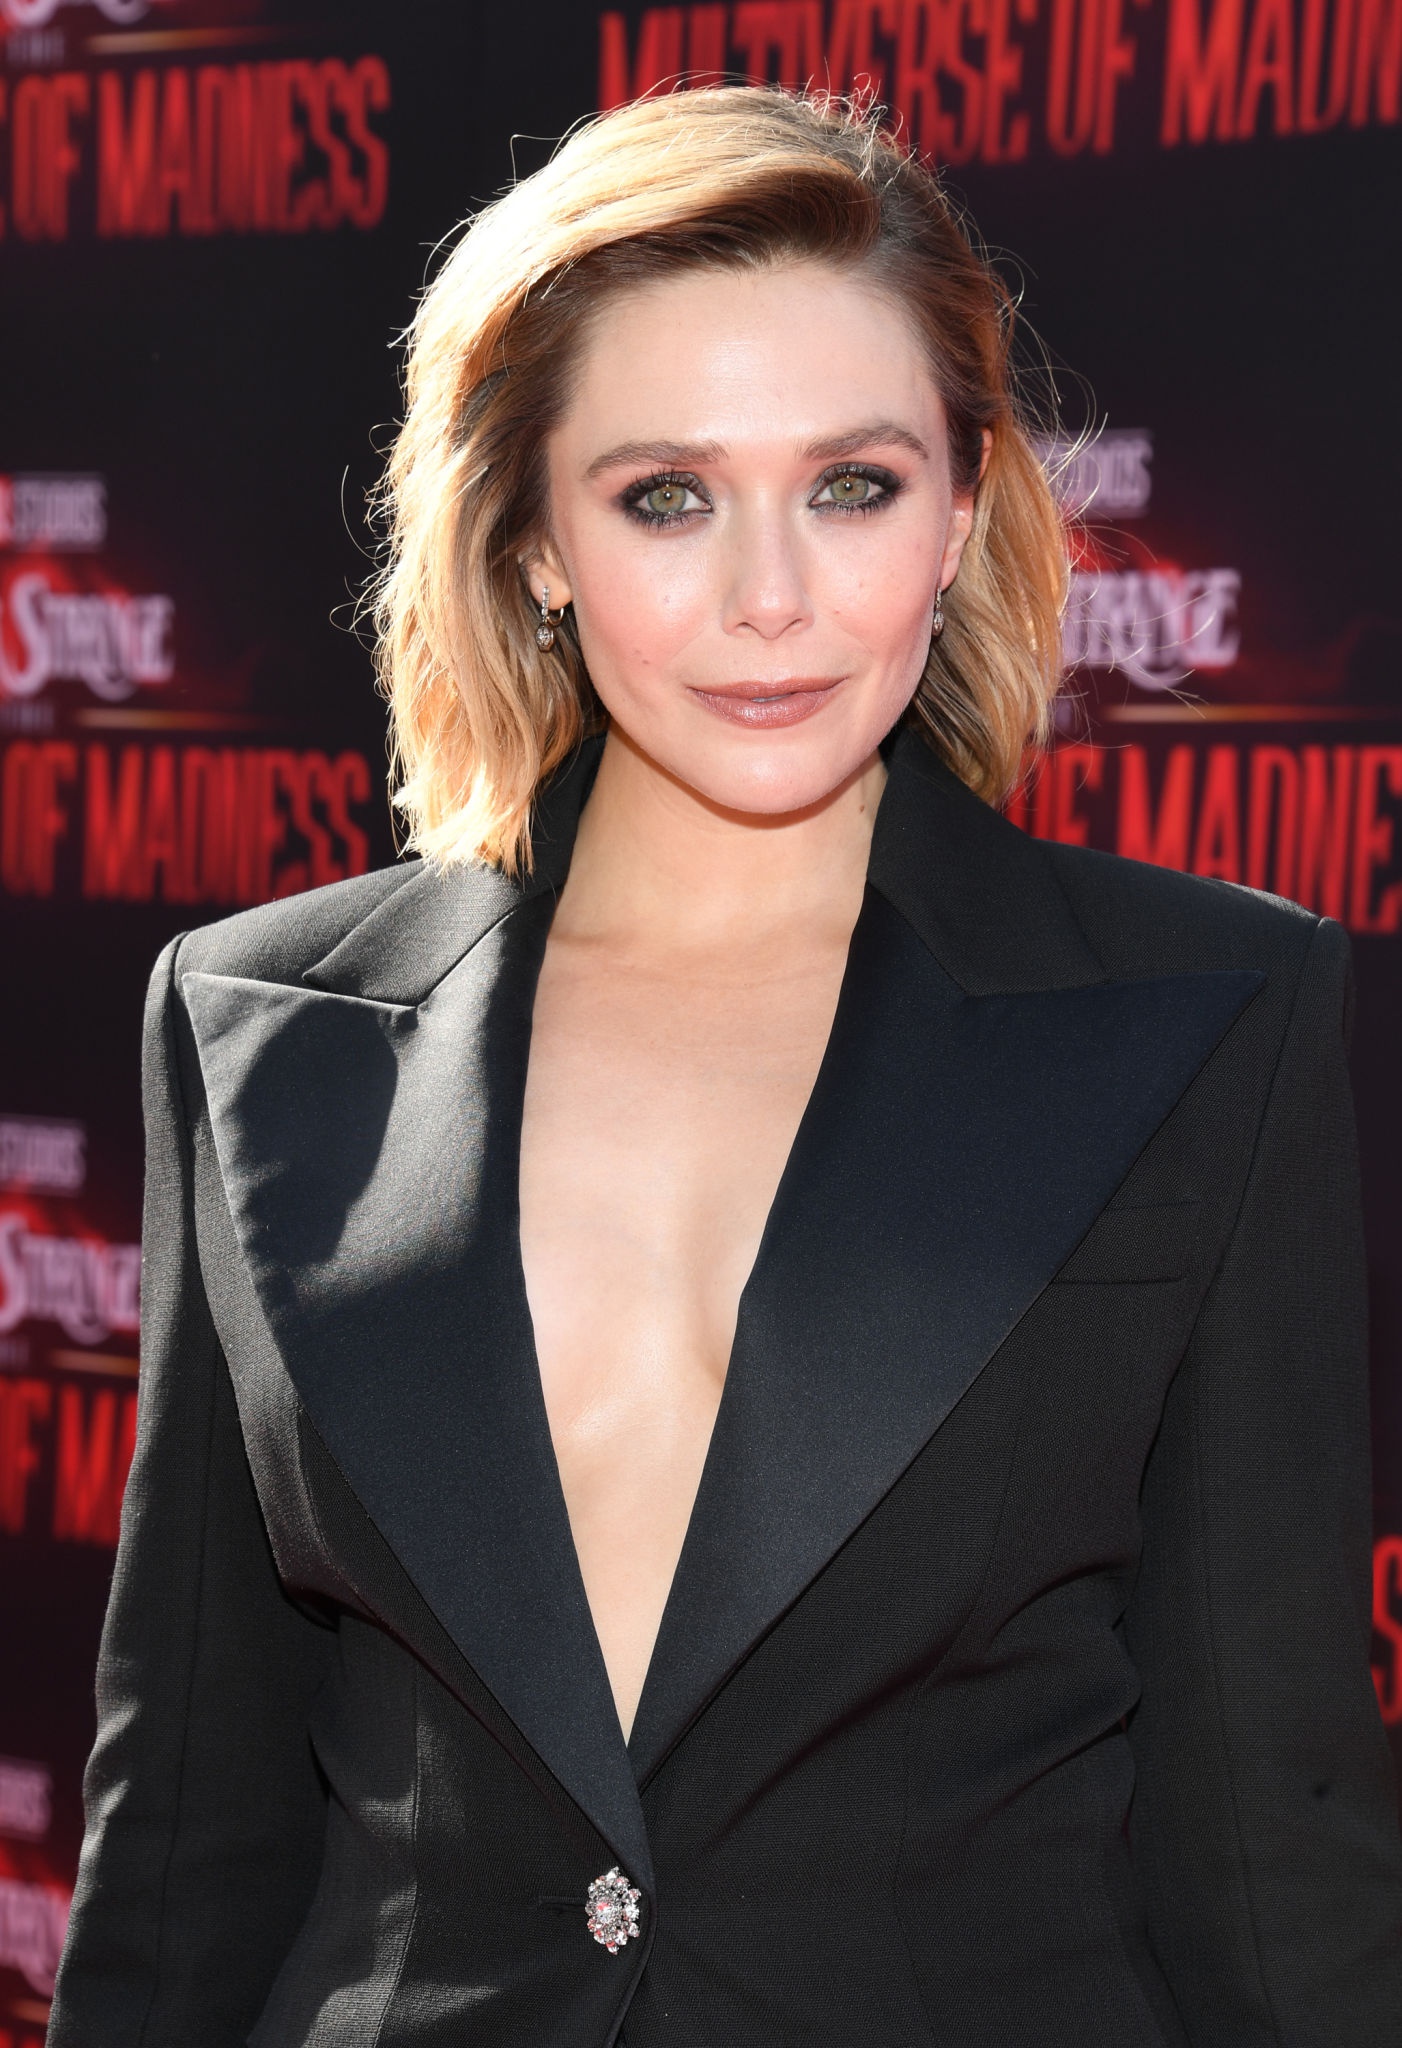 nude Elizabeth Olsen (32 photos) Cleavage, Facebook, cameltoe